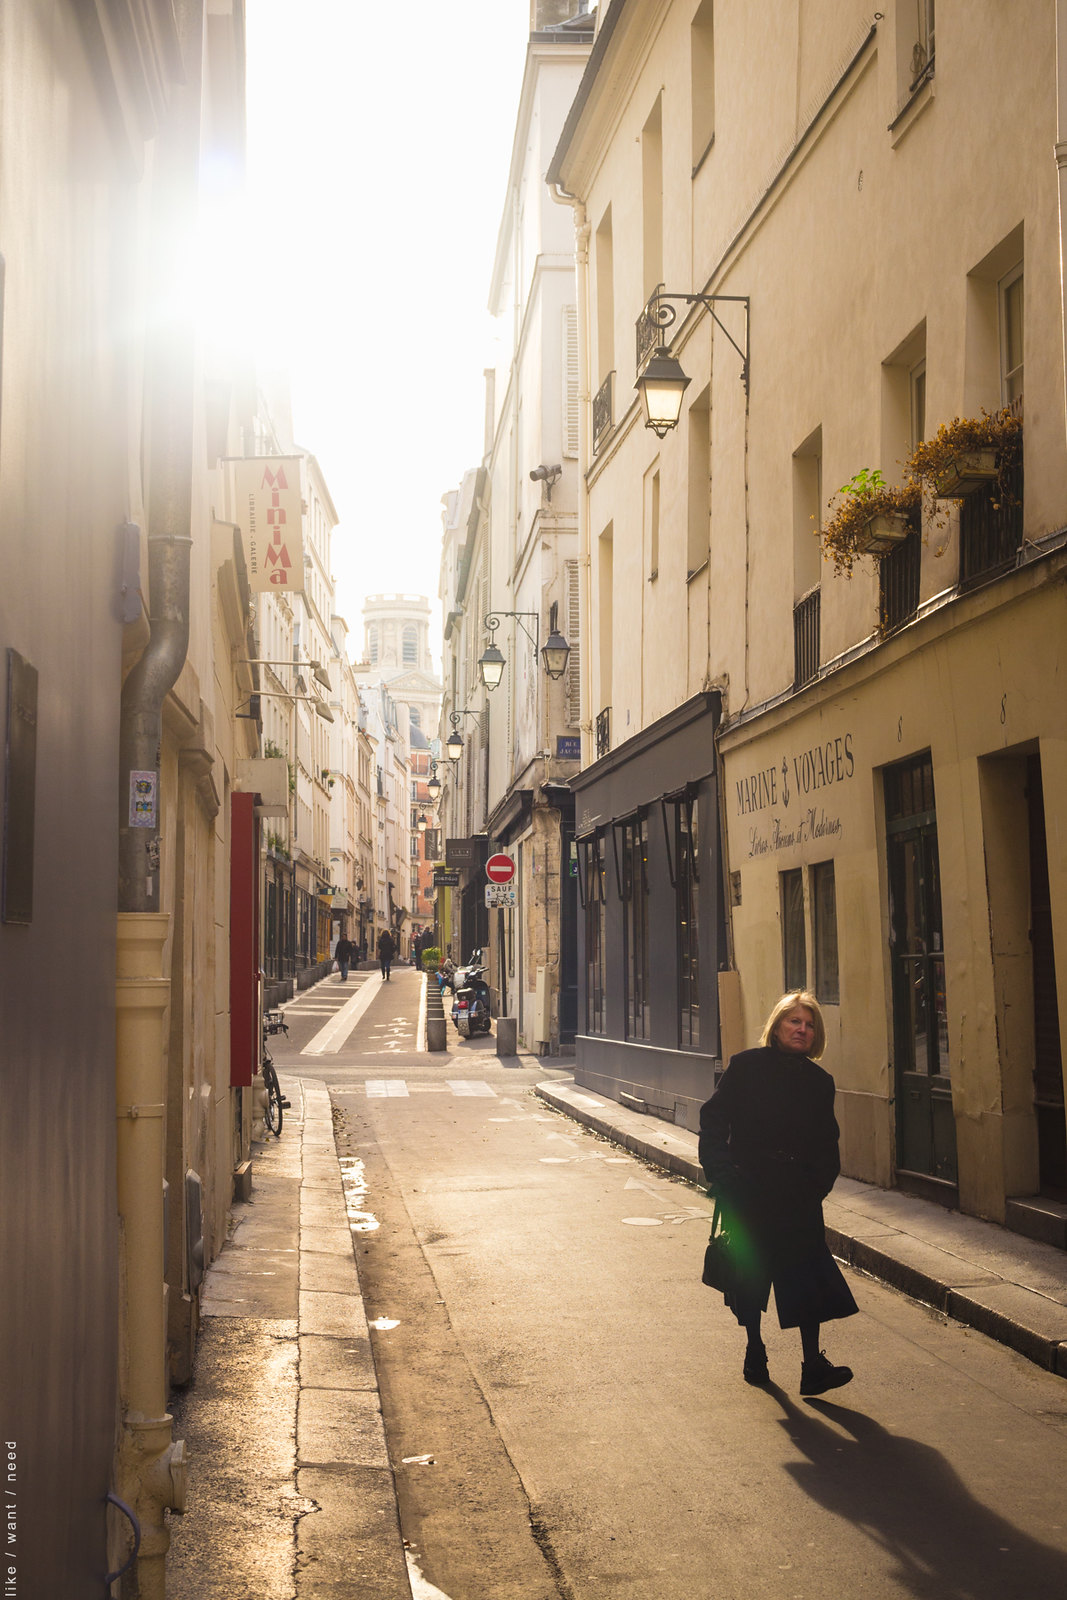 Early Evening Light, Saint-Germain